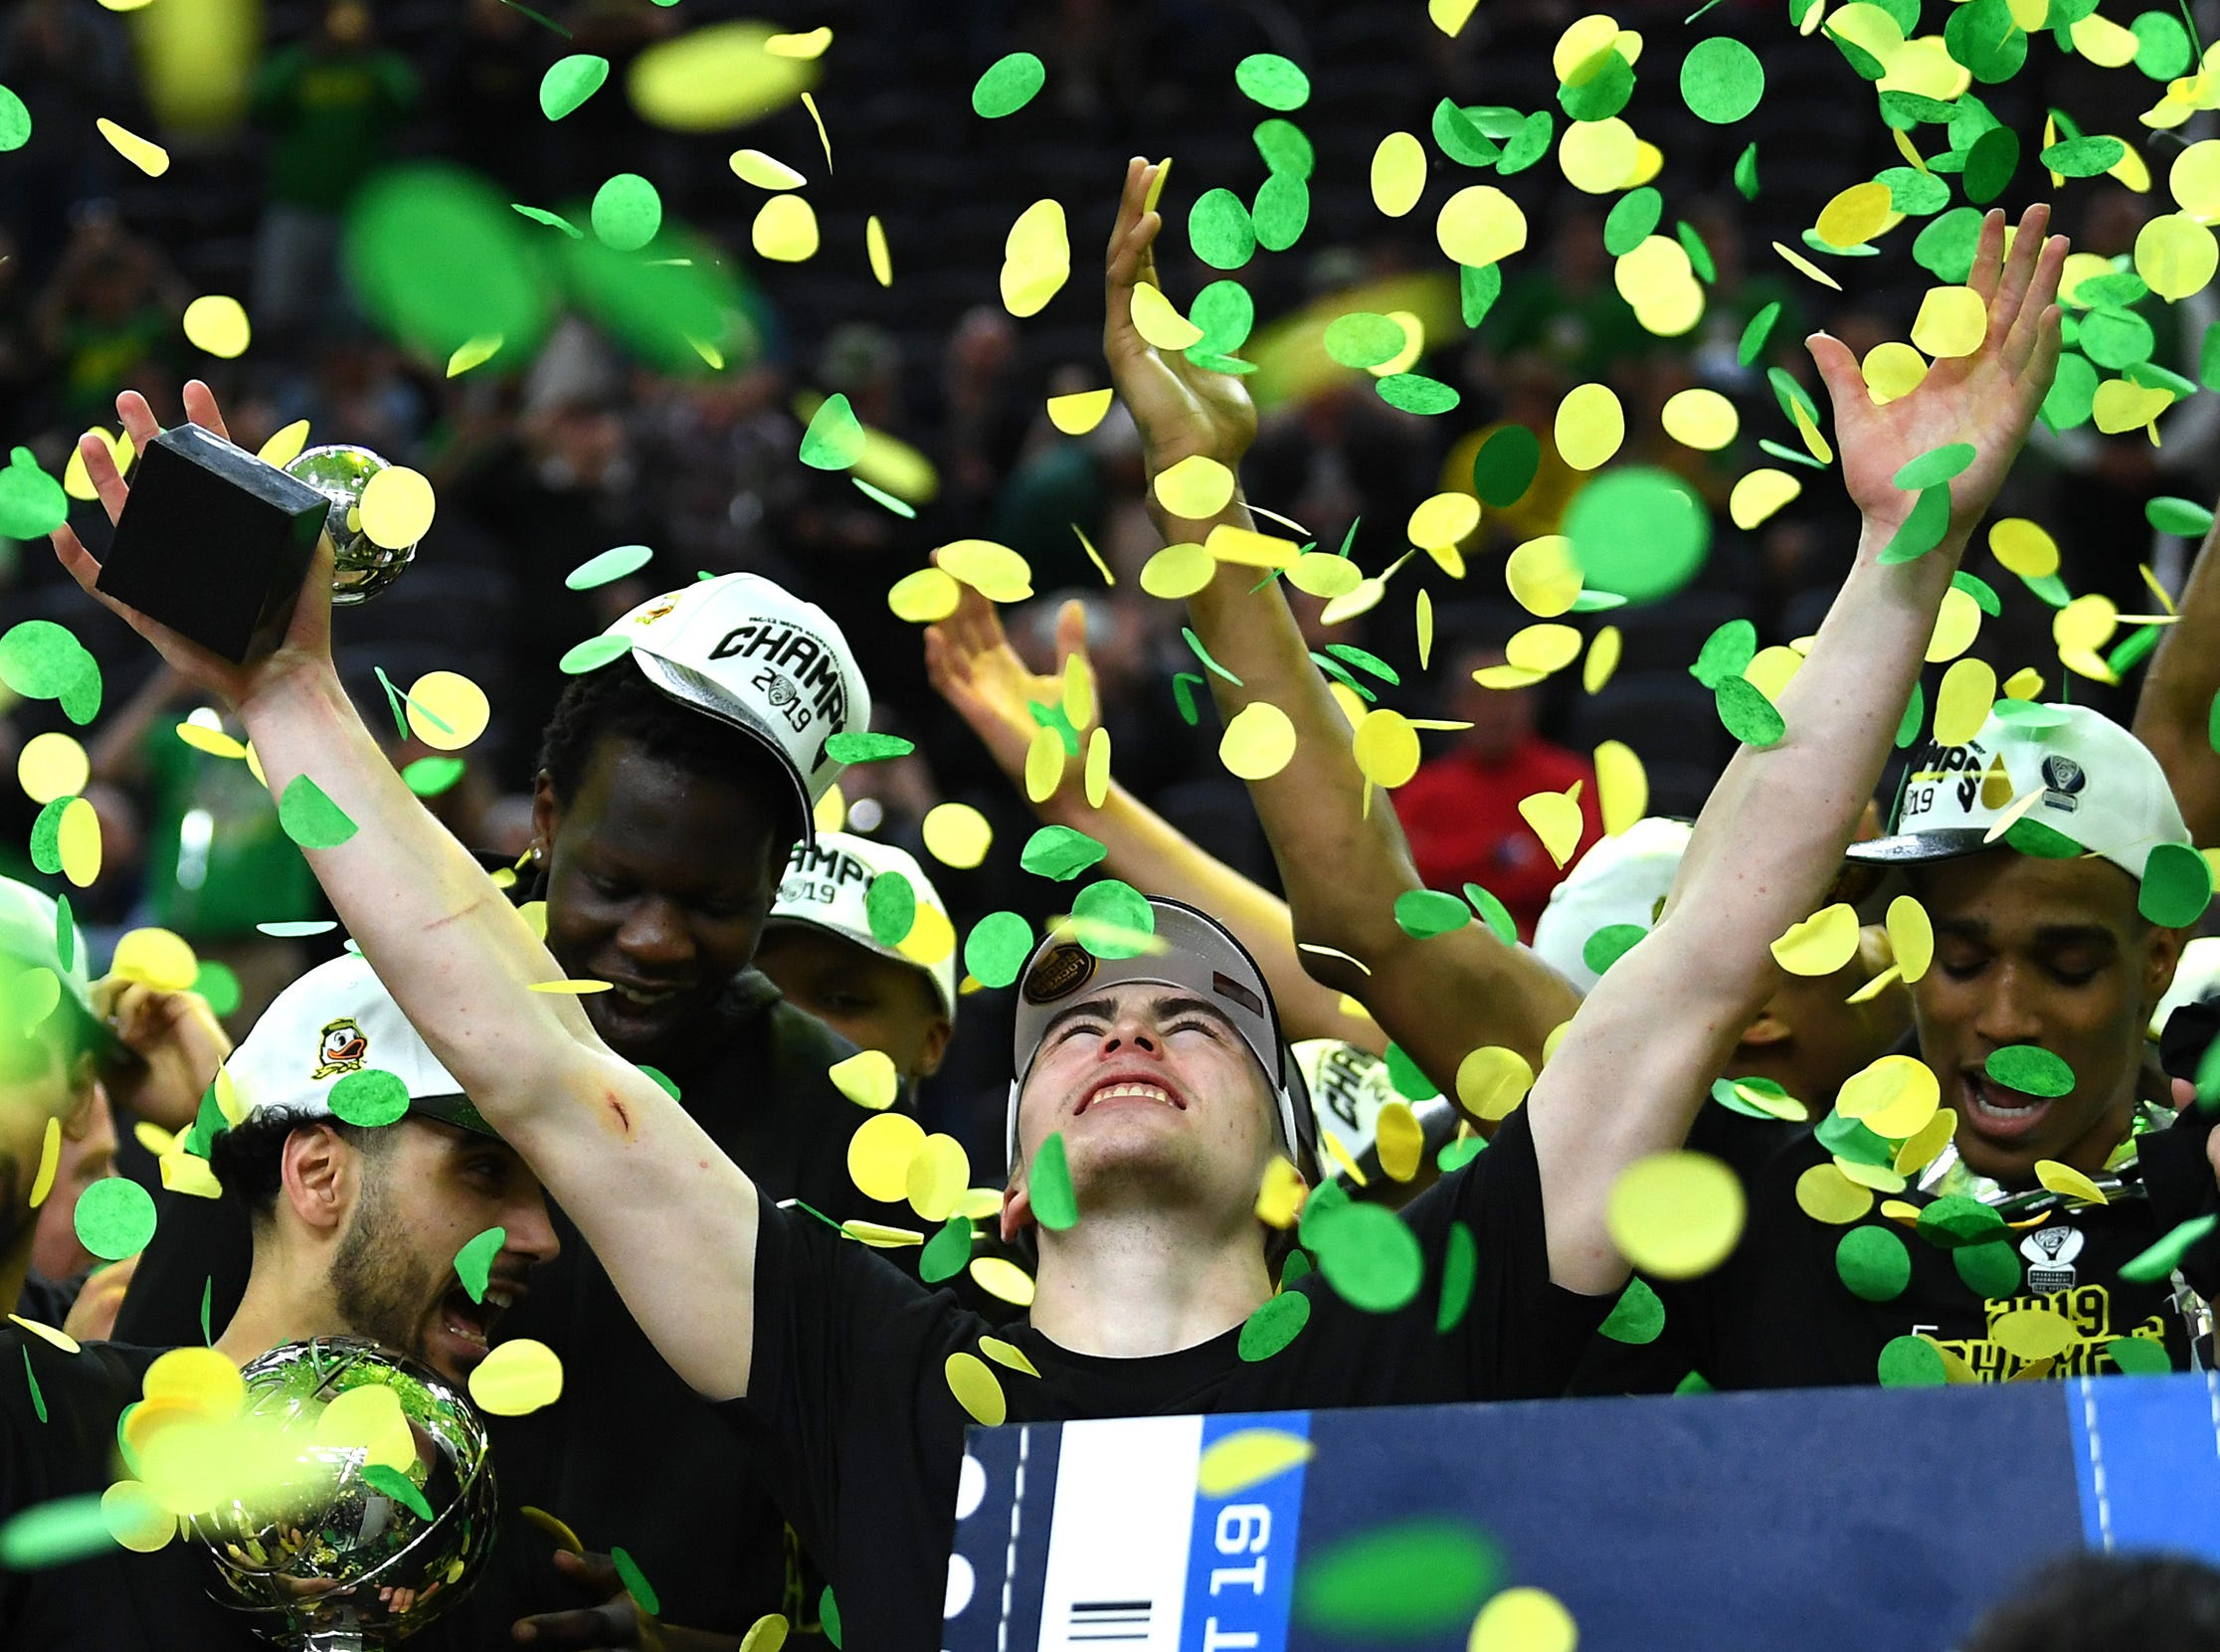 Oregon (23-12), No. 12 seed in South, Pac-12 Conference champion